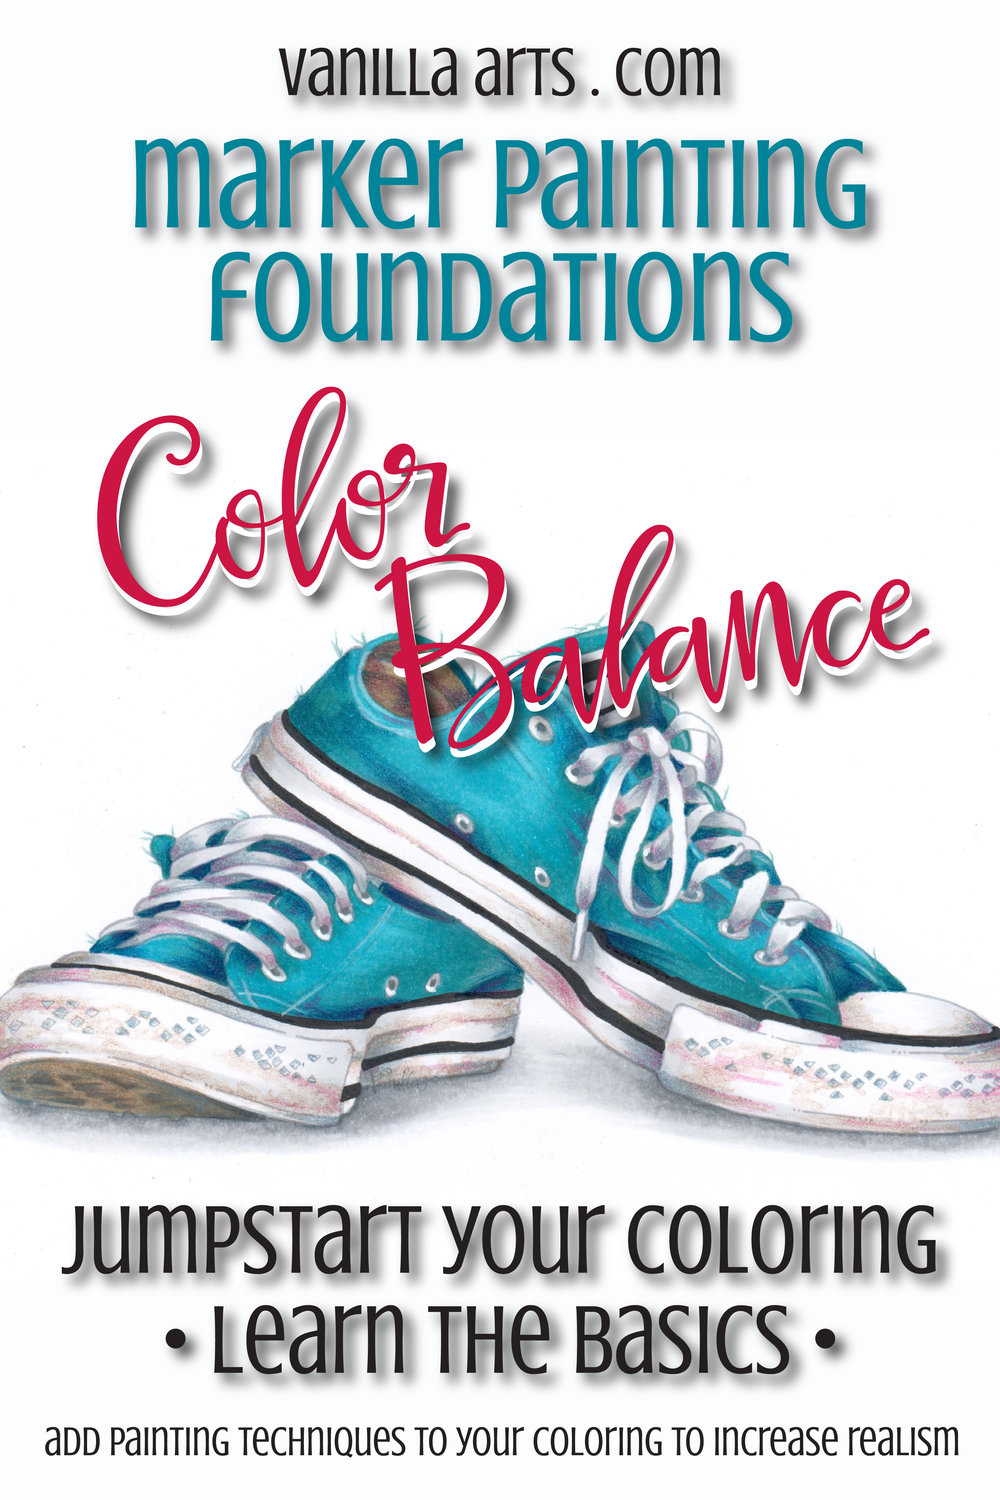 Improve your Copic Coloring by learning to balance the colors you choose. | VanillaArts.com